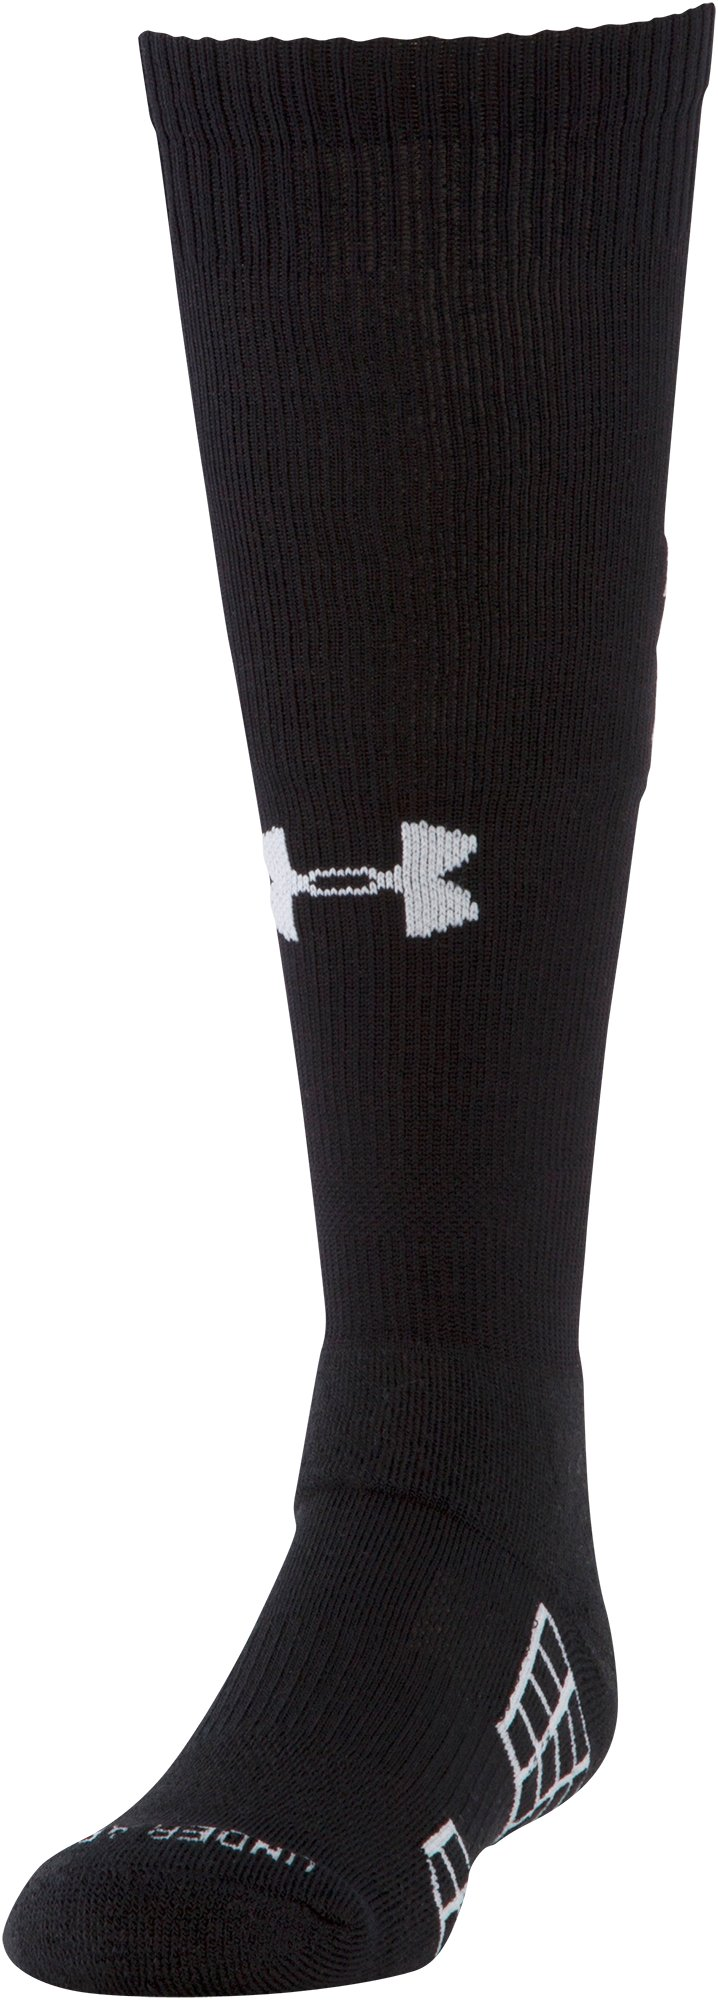 Boys' UA Striker Soccer Over-The-Calf Socks, Black